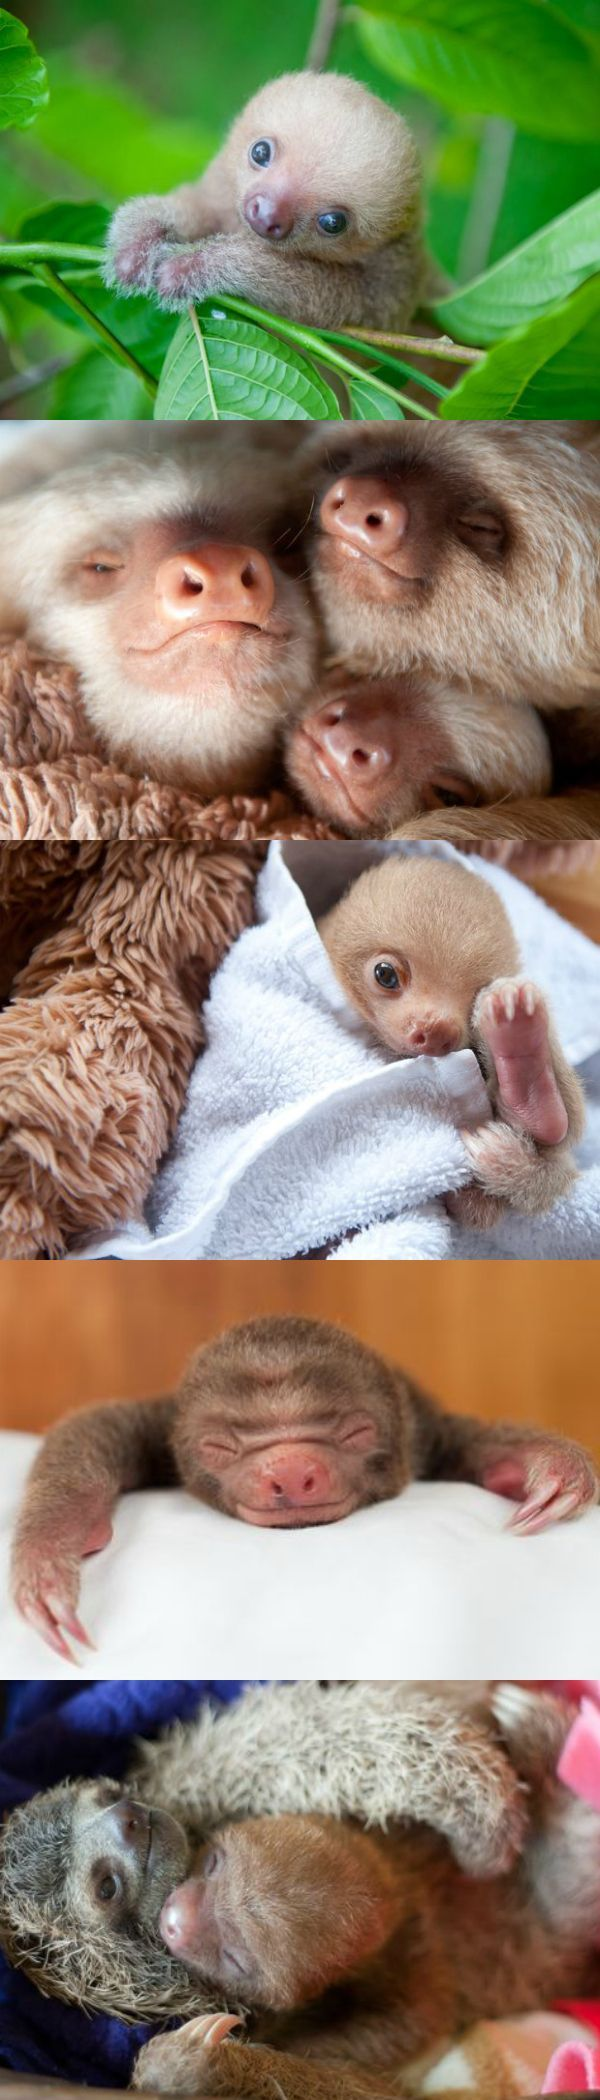 With their sweet, squishy faces and lazy movements, sloths are one of the most squee-worthy animals on the Internet.